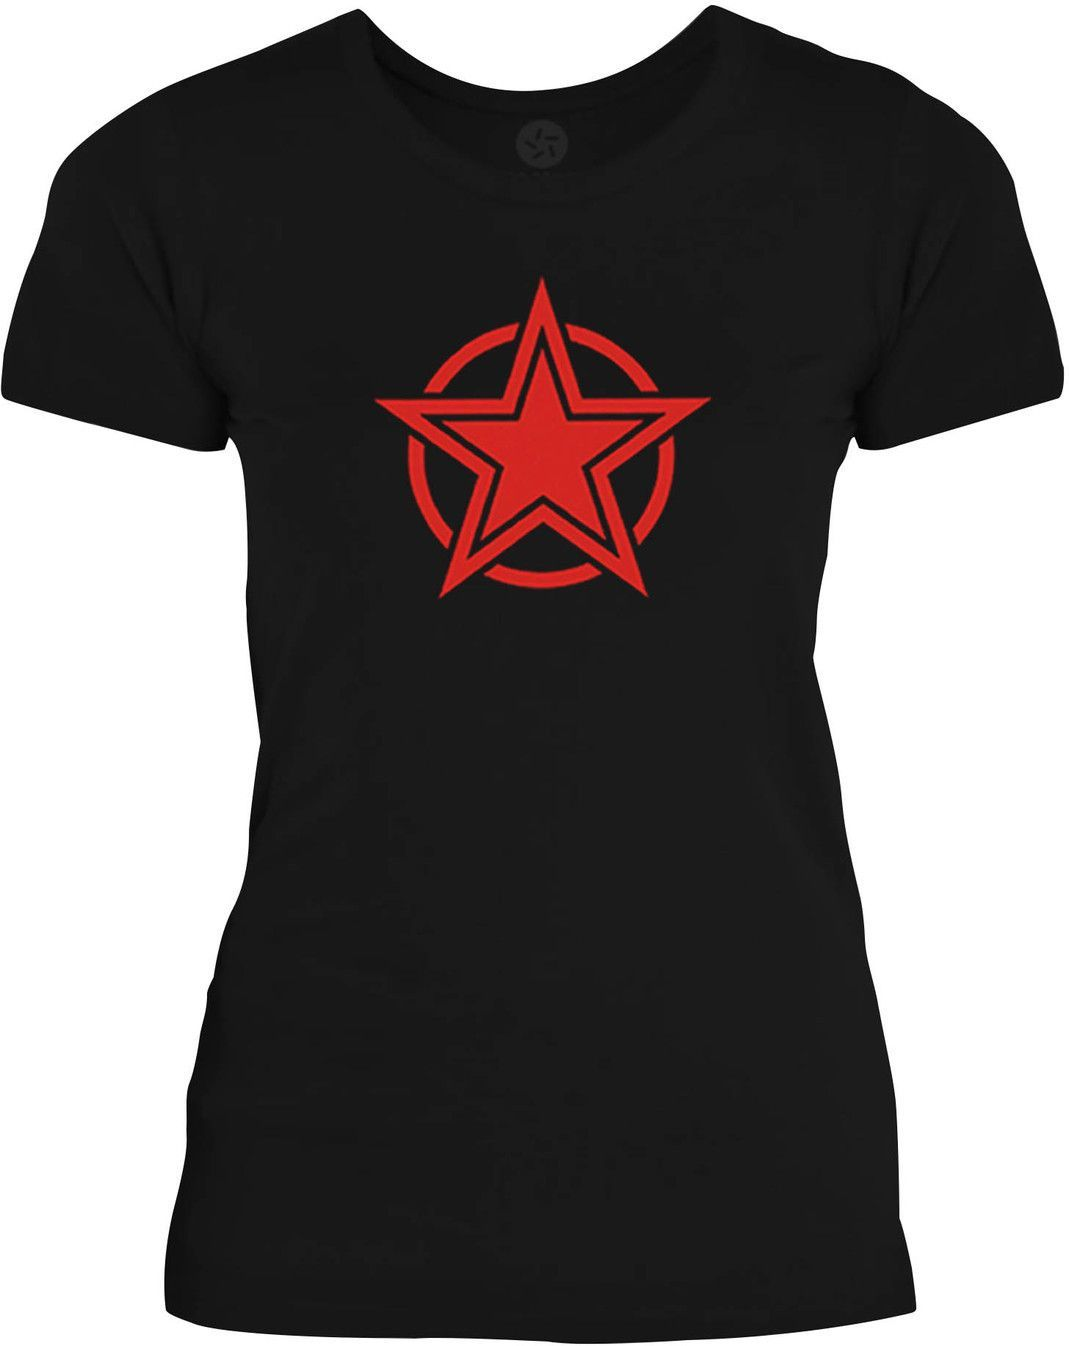 Big Texas Double Circle Star (Red) Womens Fine Jersey T-Shirt